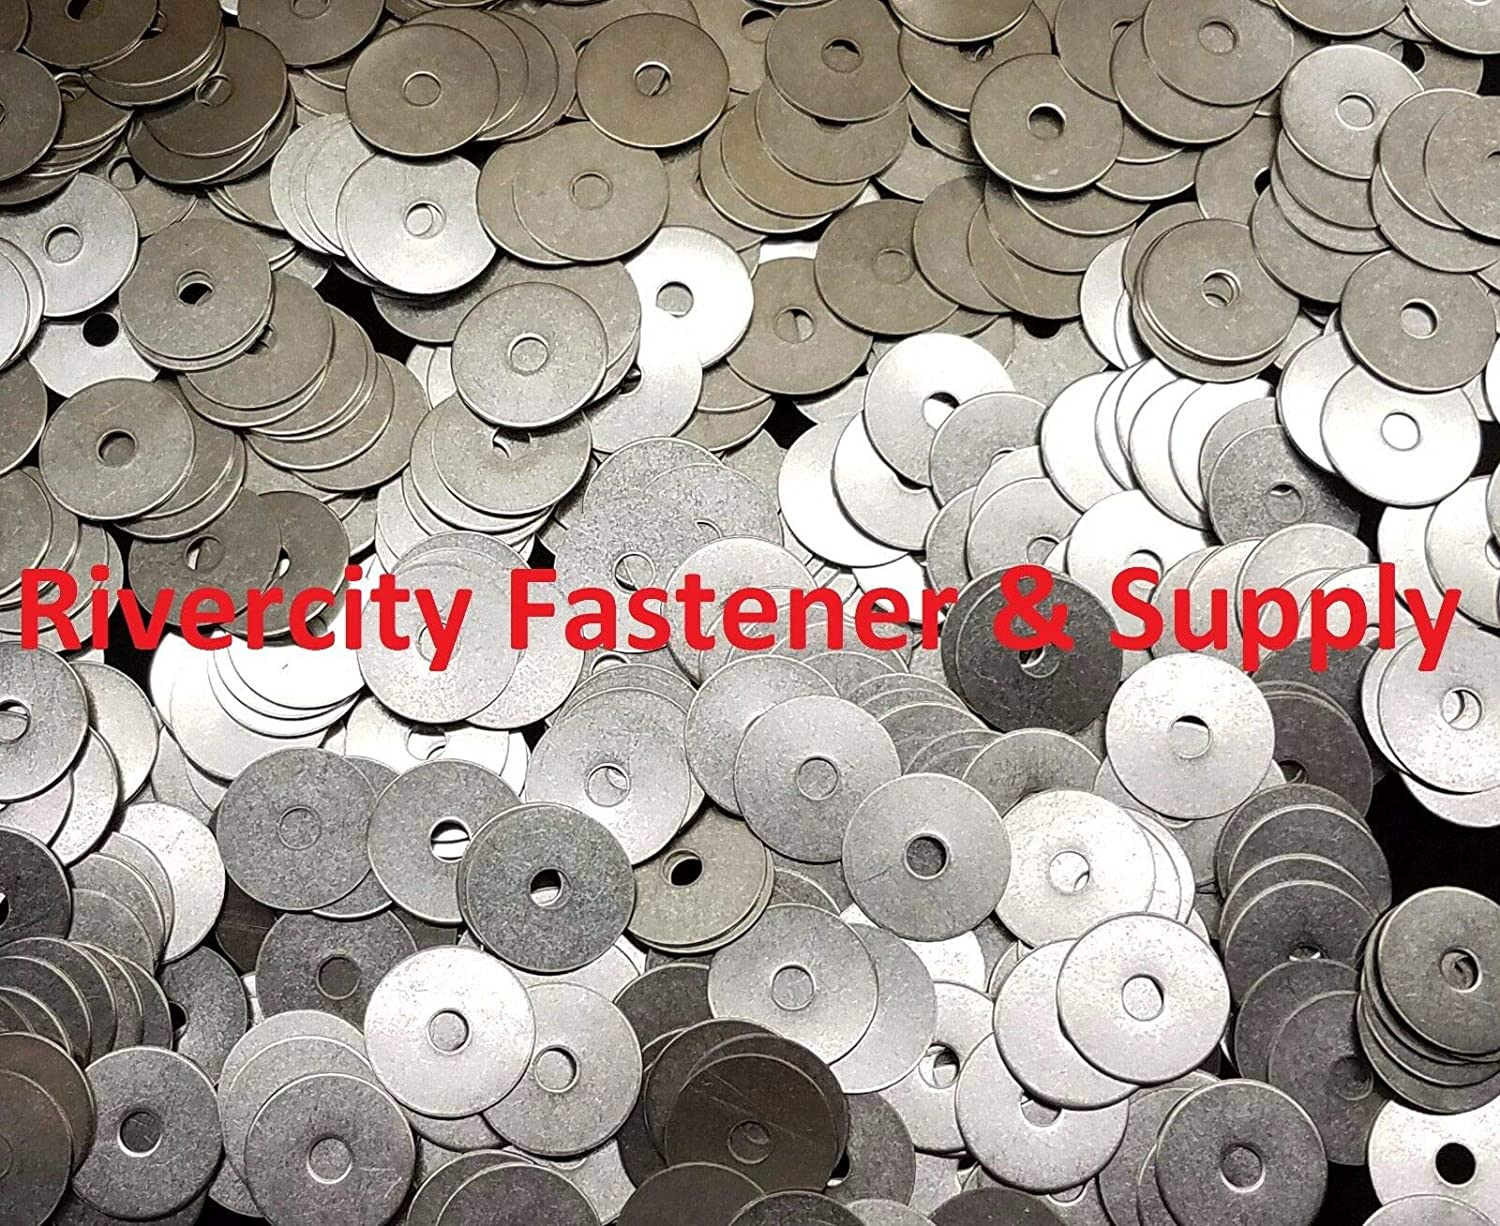 1//4x1-1//2 Washers Stainless Steel 1//4 x 1-1//2 Large OD Washer 25